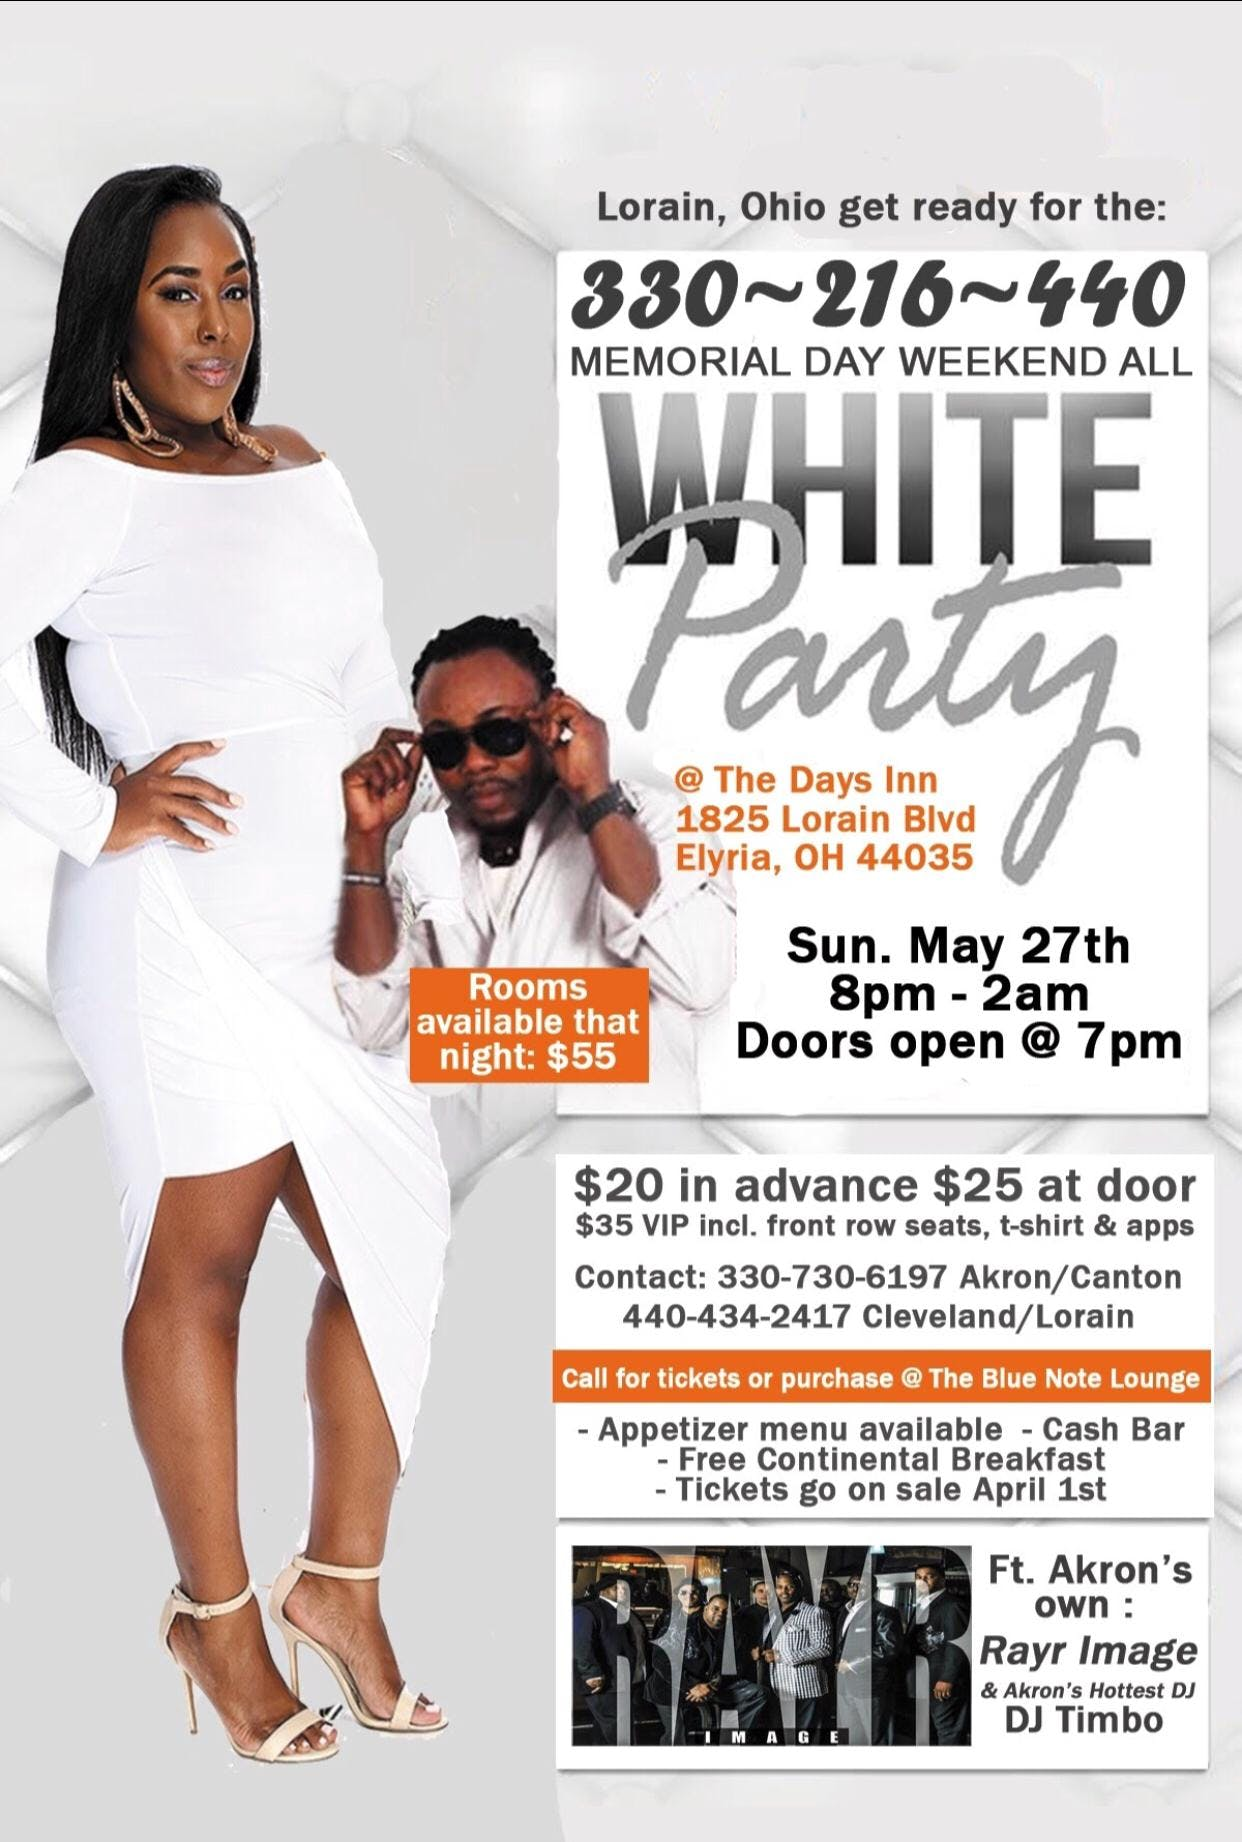 All White Party featuring Rayr Image Memorial